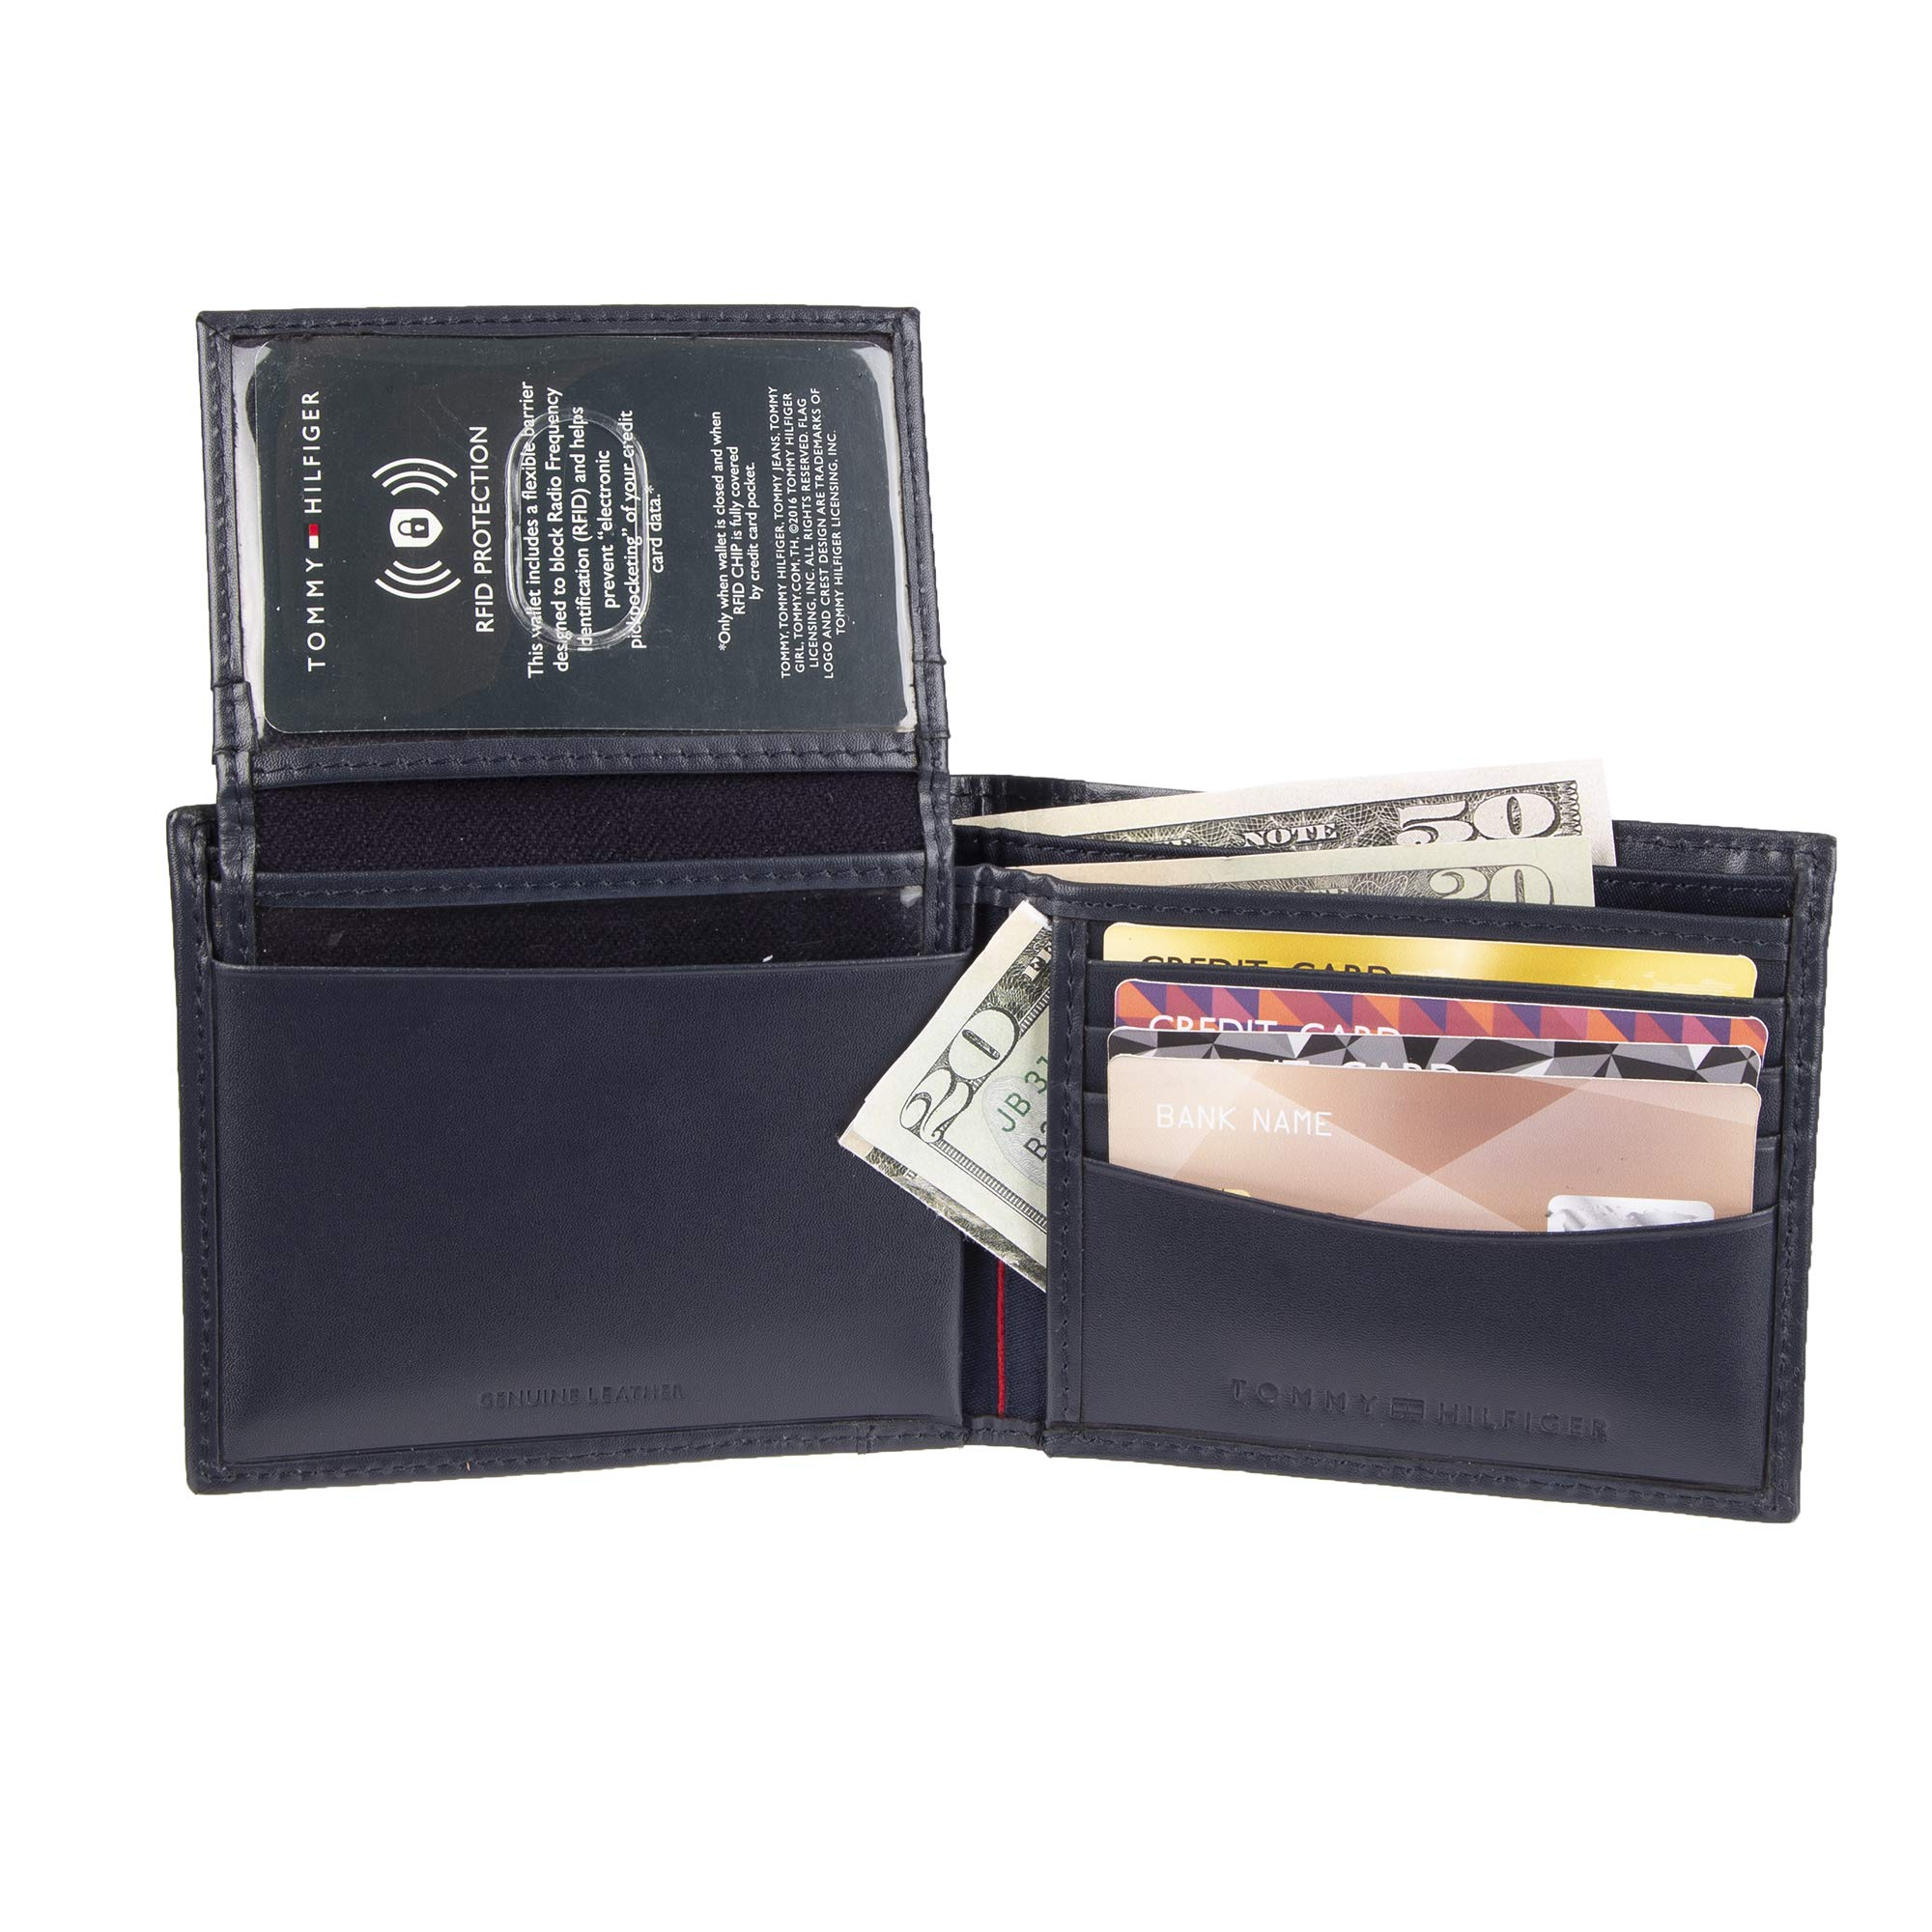 Tommy Hilfiger Men's Leather Wallet - RFID Blocking Slim Thin Bifold with Removable Card Holder and Gift Box, Navy Casual by Tommy Hilfiger (Image #3)